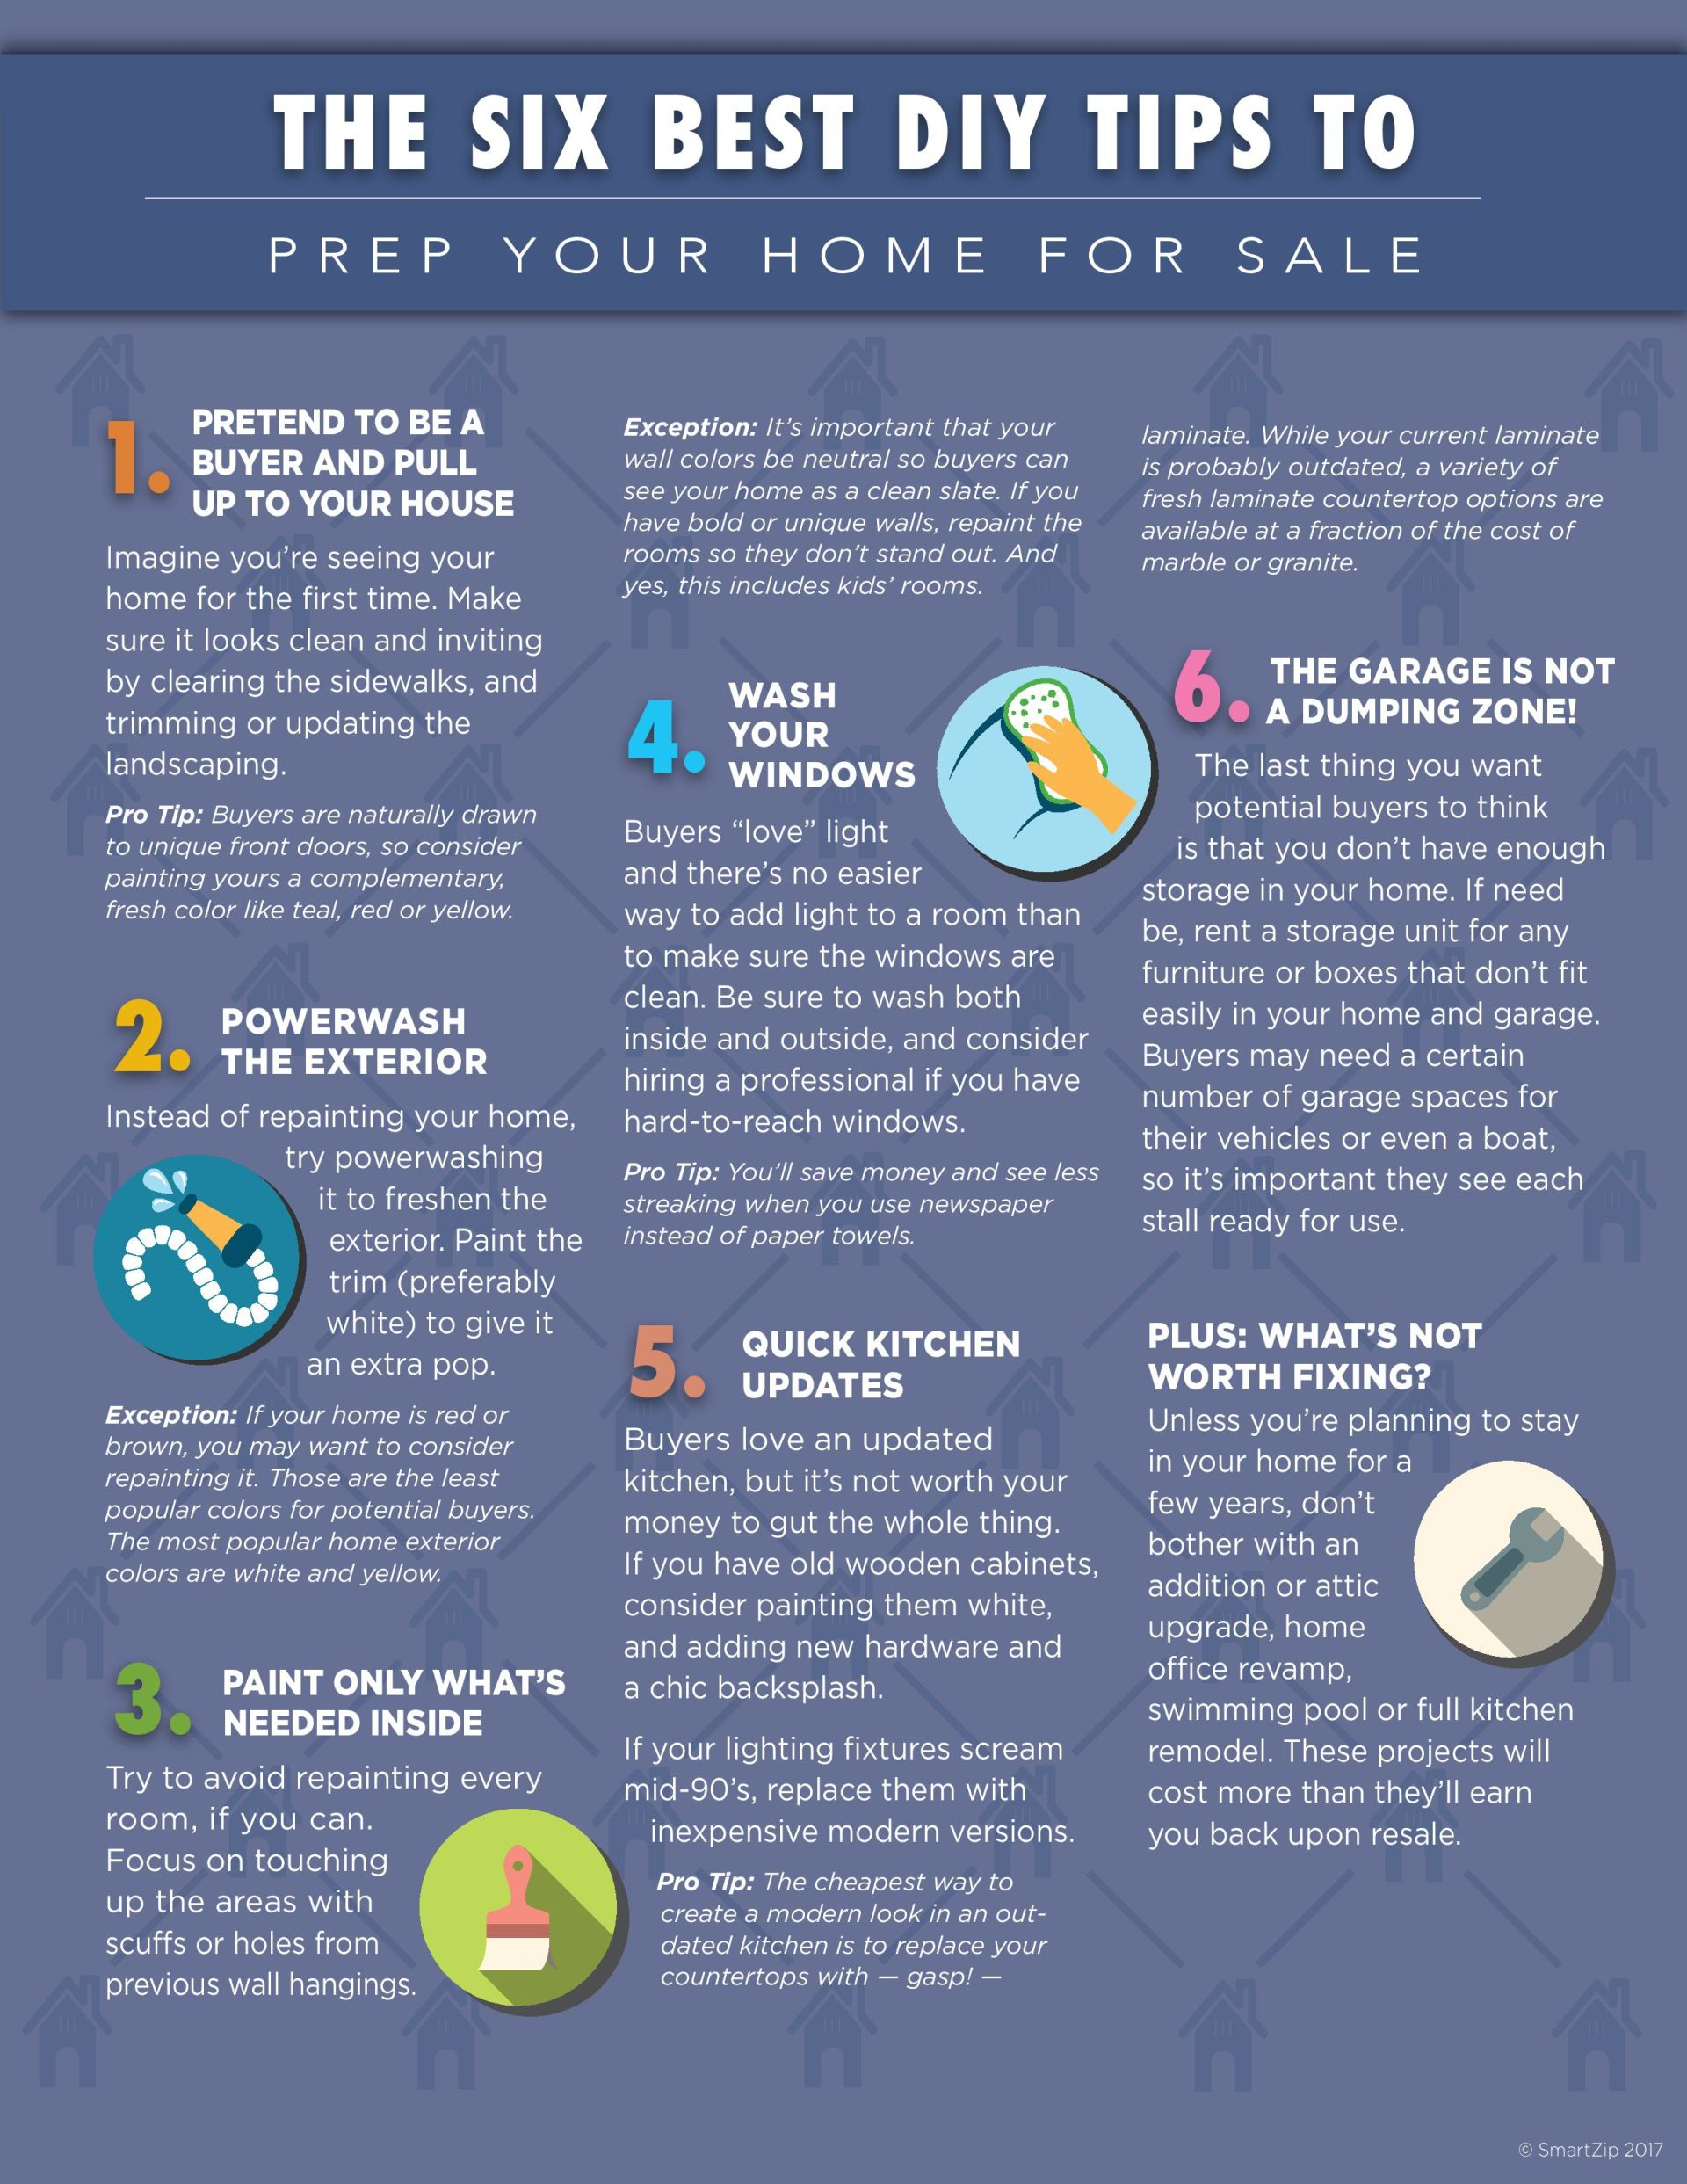 The Six Best DIY Tips to Prep Your Home for Sale